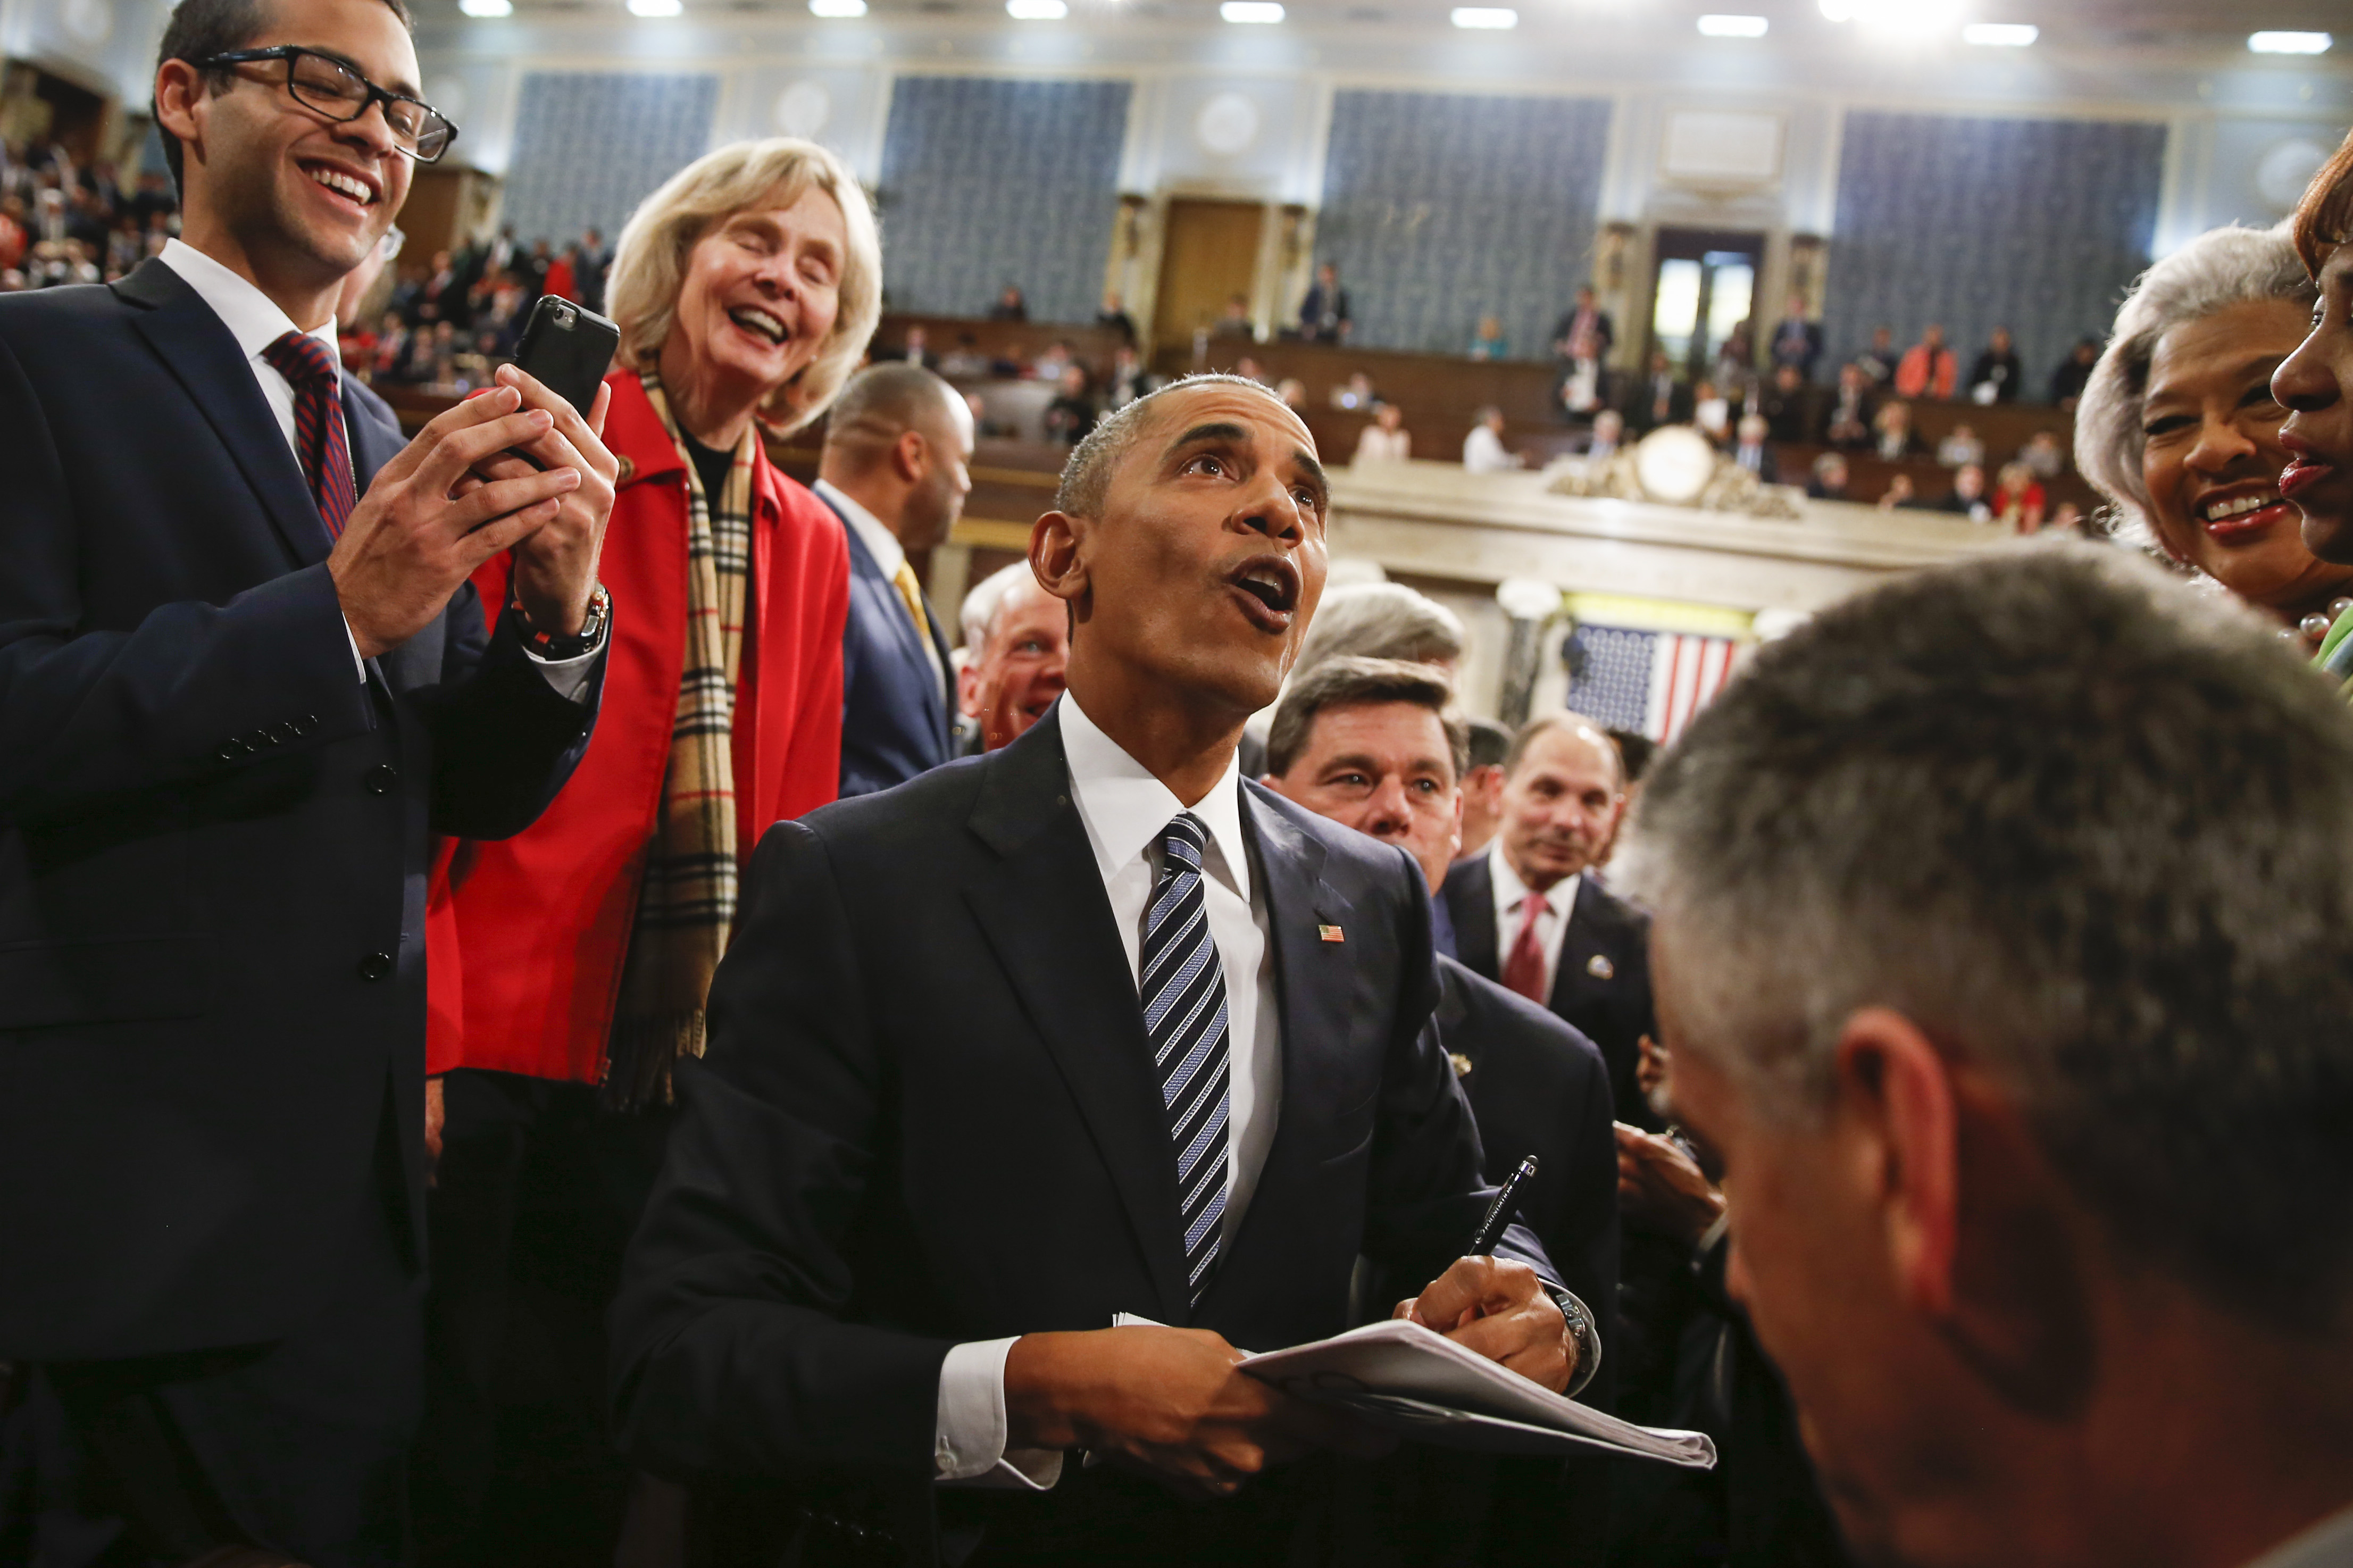 President Obama's final State of the Union